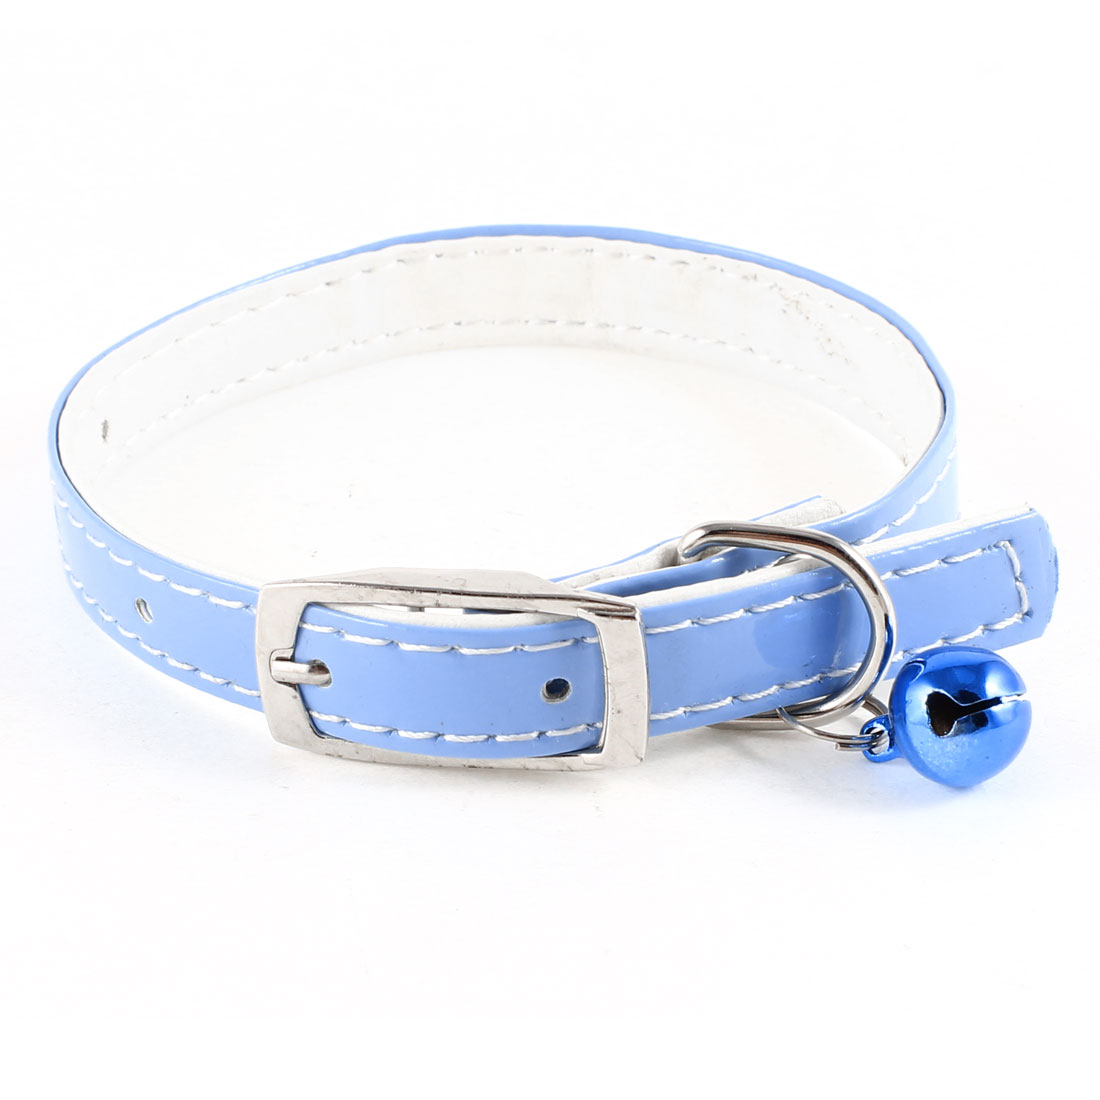 12mm Wide Jingle Bell Rhinestone Decor Adjustable Puppy Collar Blue